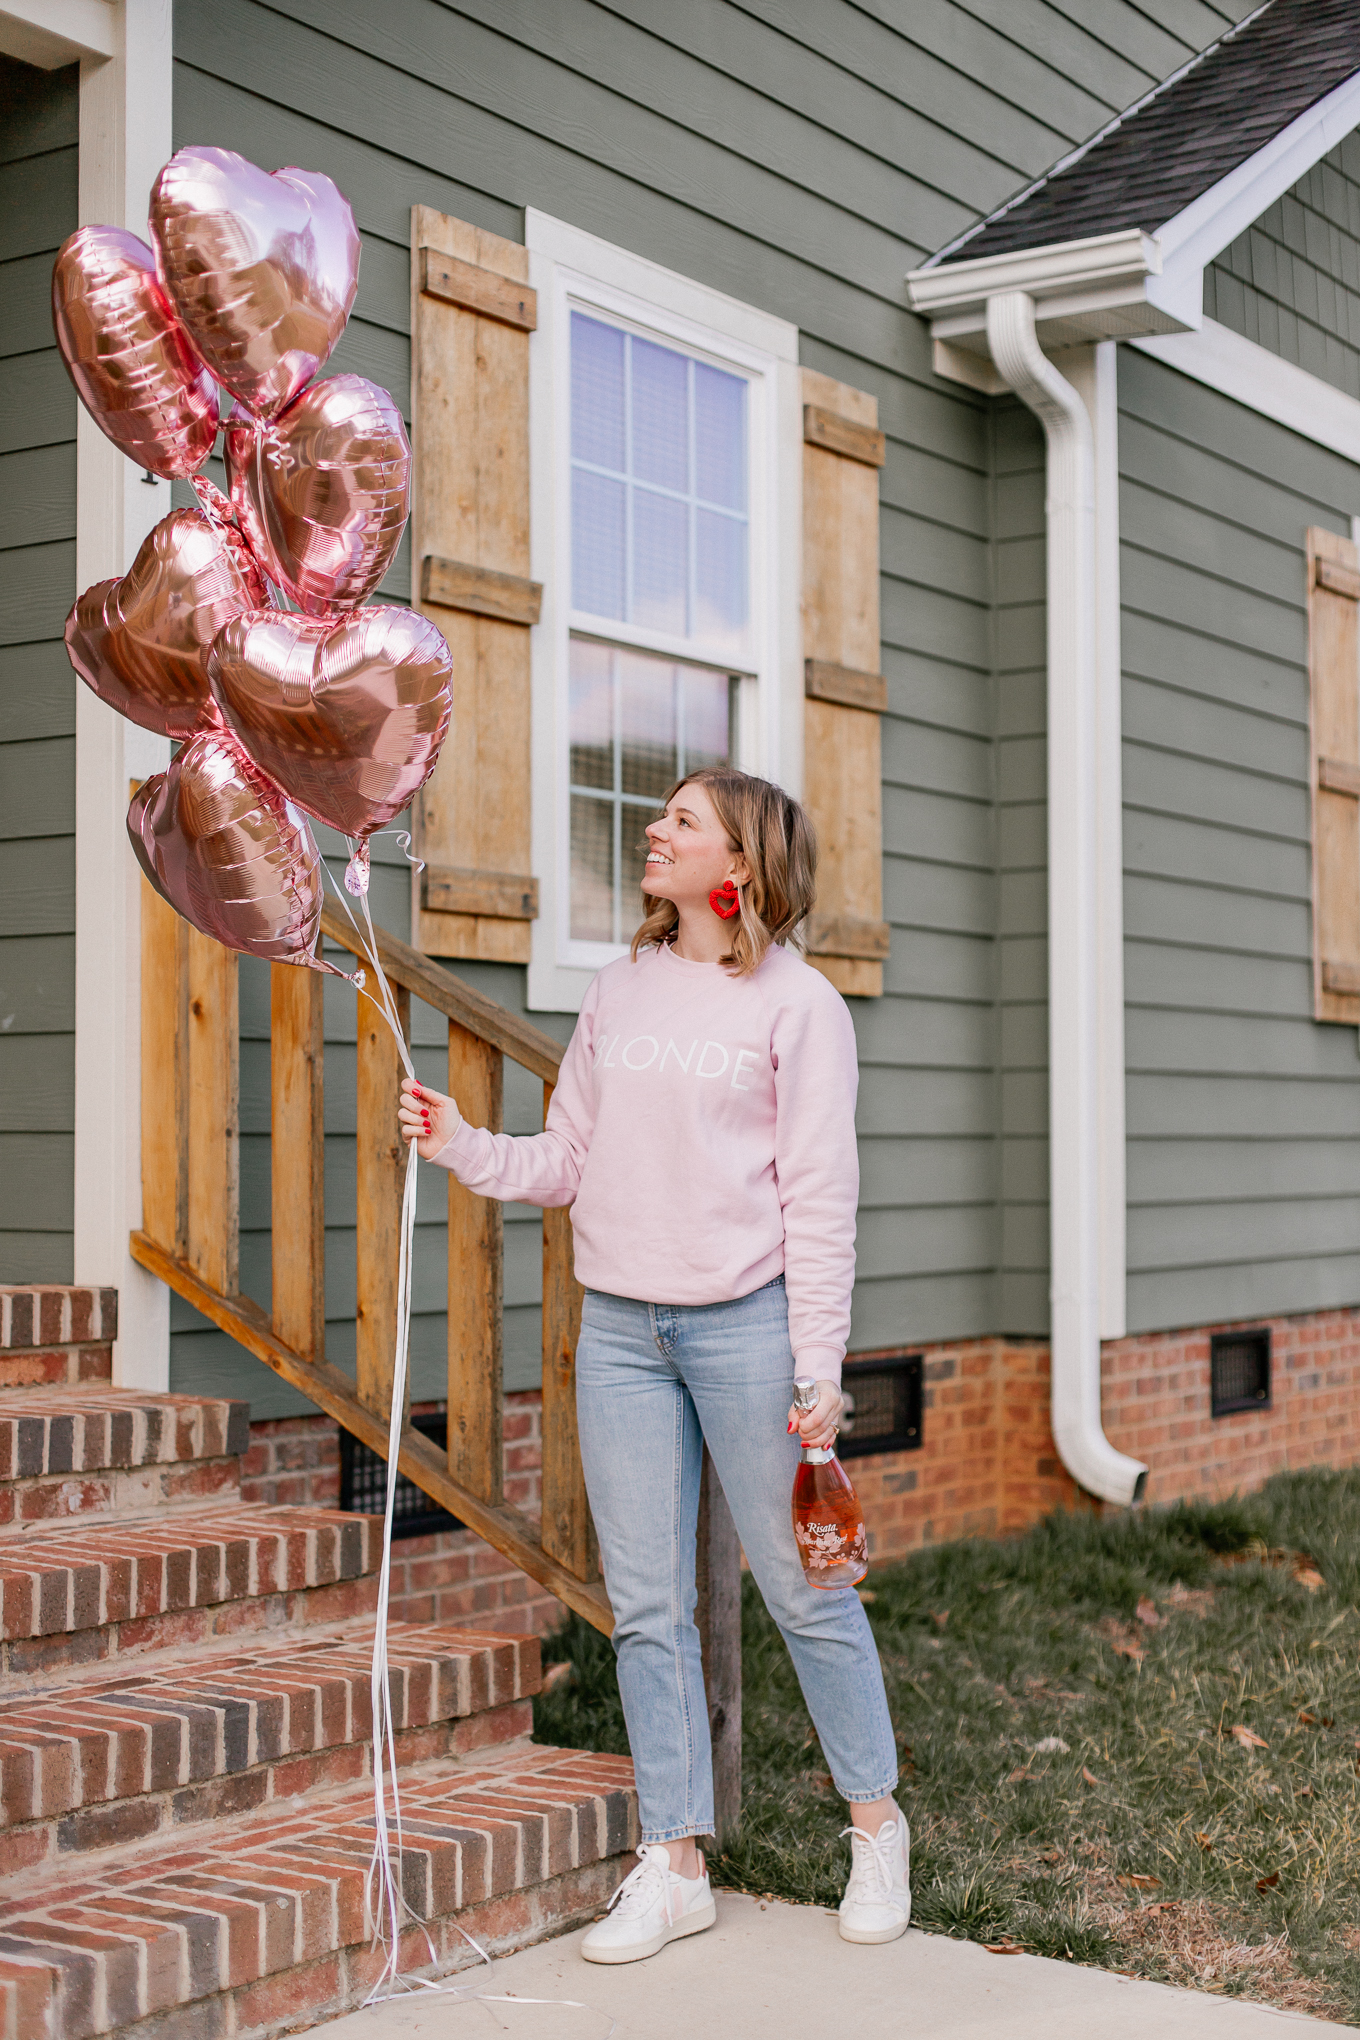 Galentine's Day Outfit Idea | Pink Crew Neck Sweatshirt, Rose Gold Balloons, Red Beaded Heart Earrings | Louella Reese